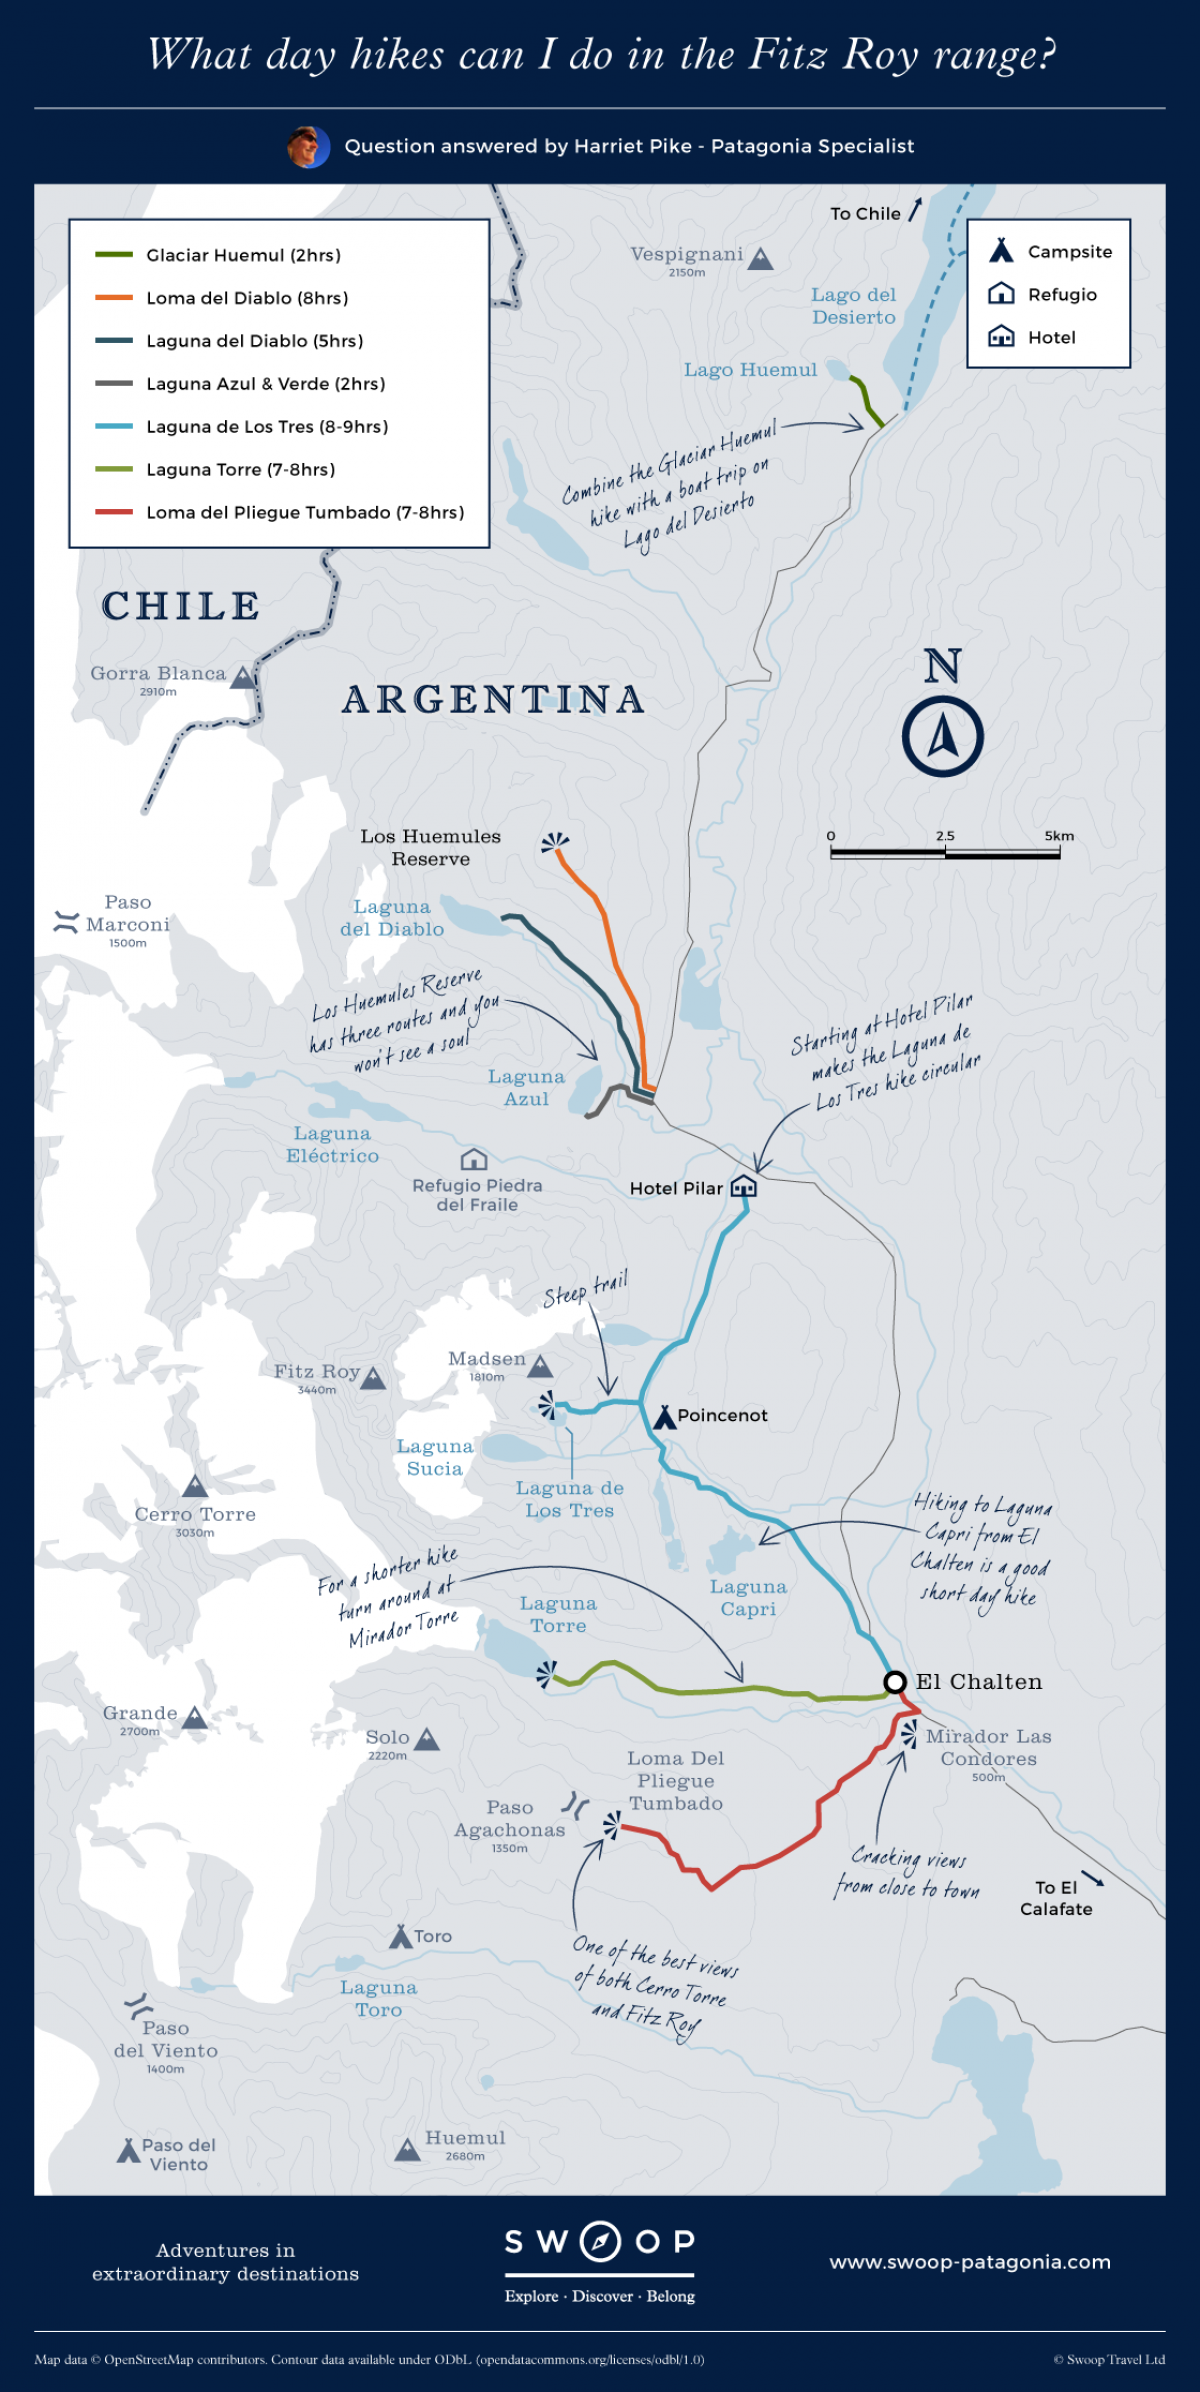 Patagonien Highlights Karte.Map Showing Day Hikes You Can Do In The Fitz Roy Range Patagonia